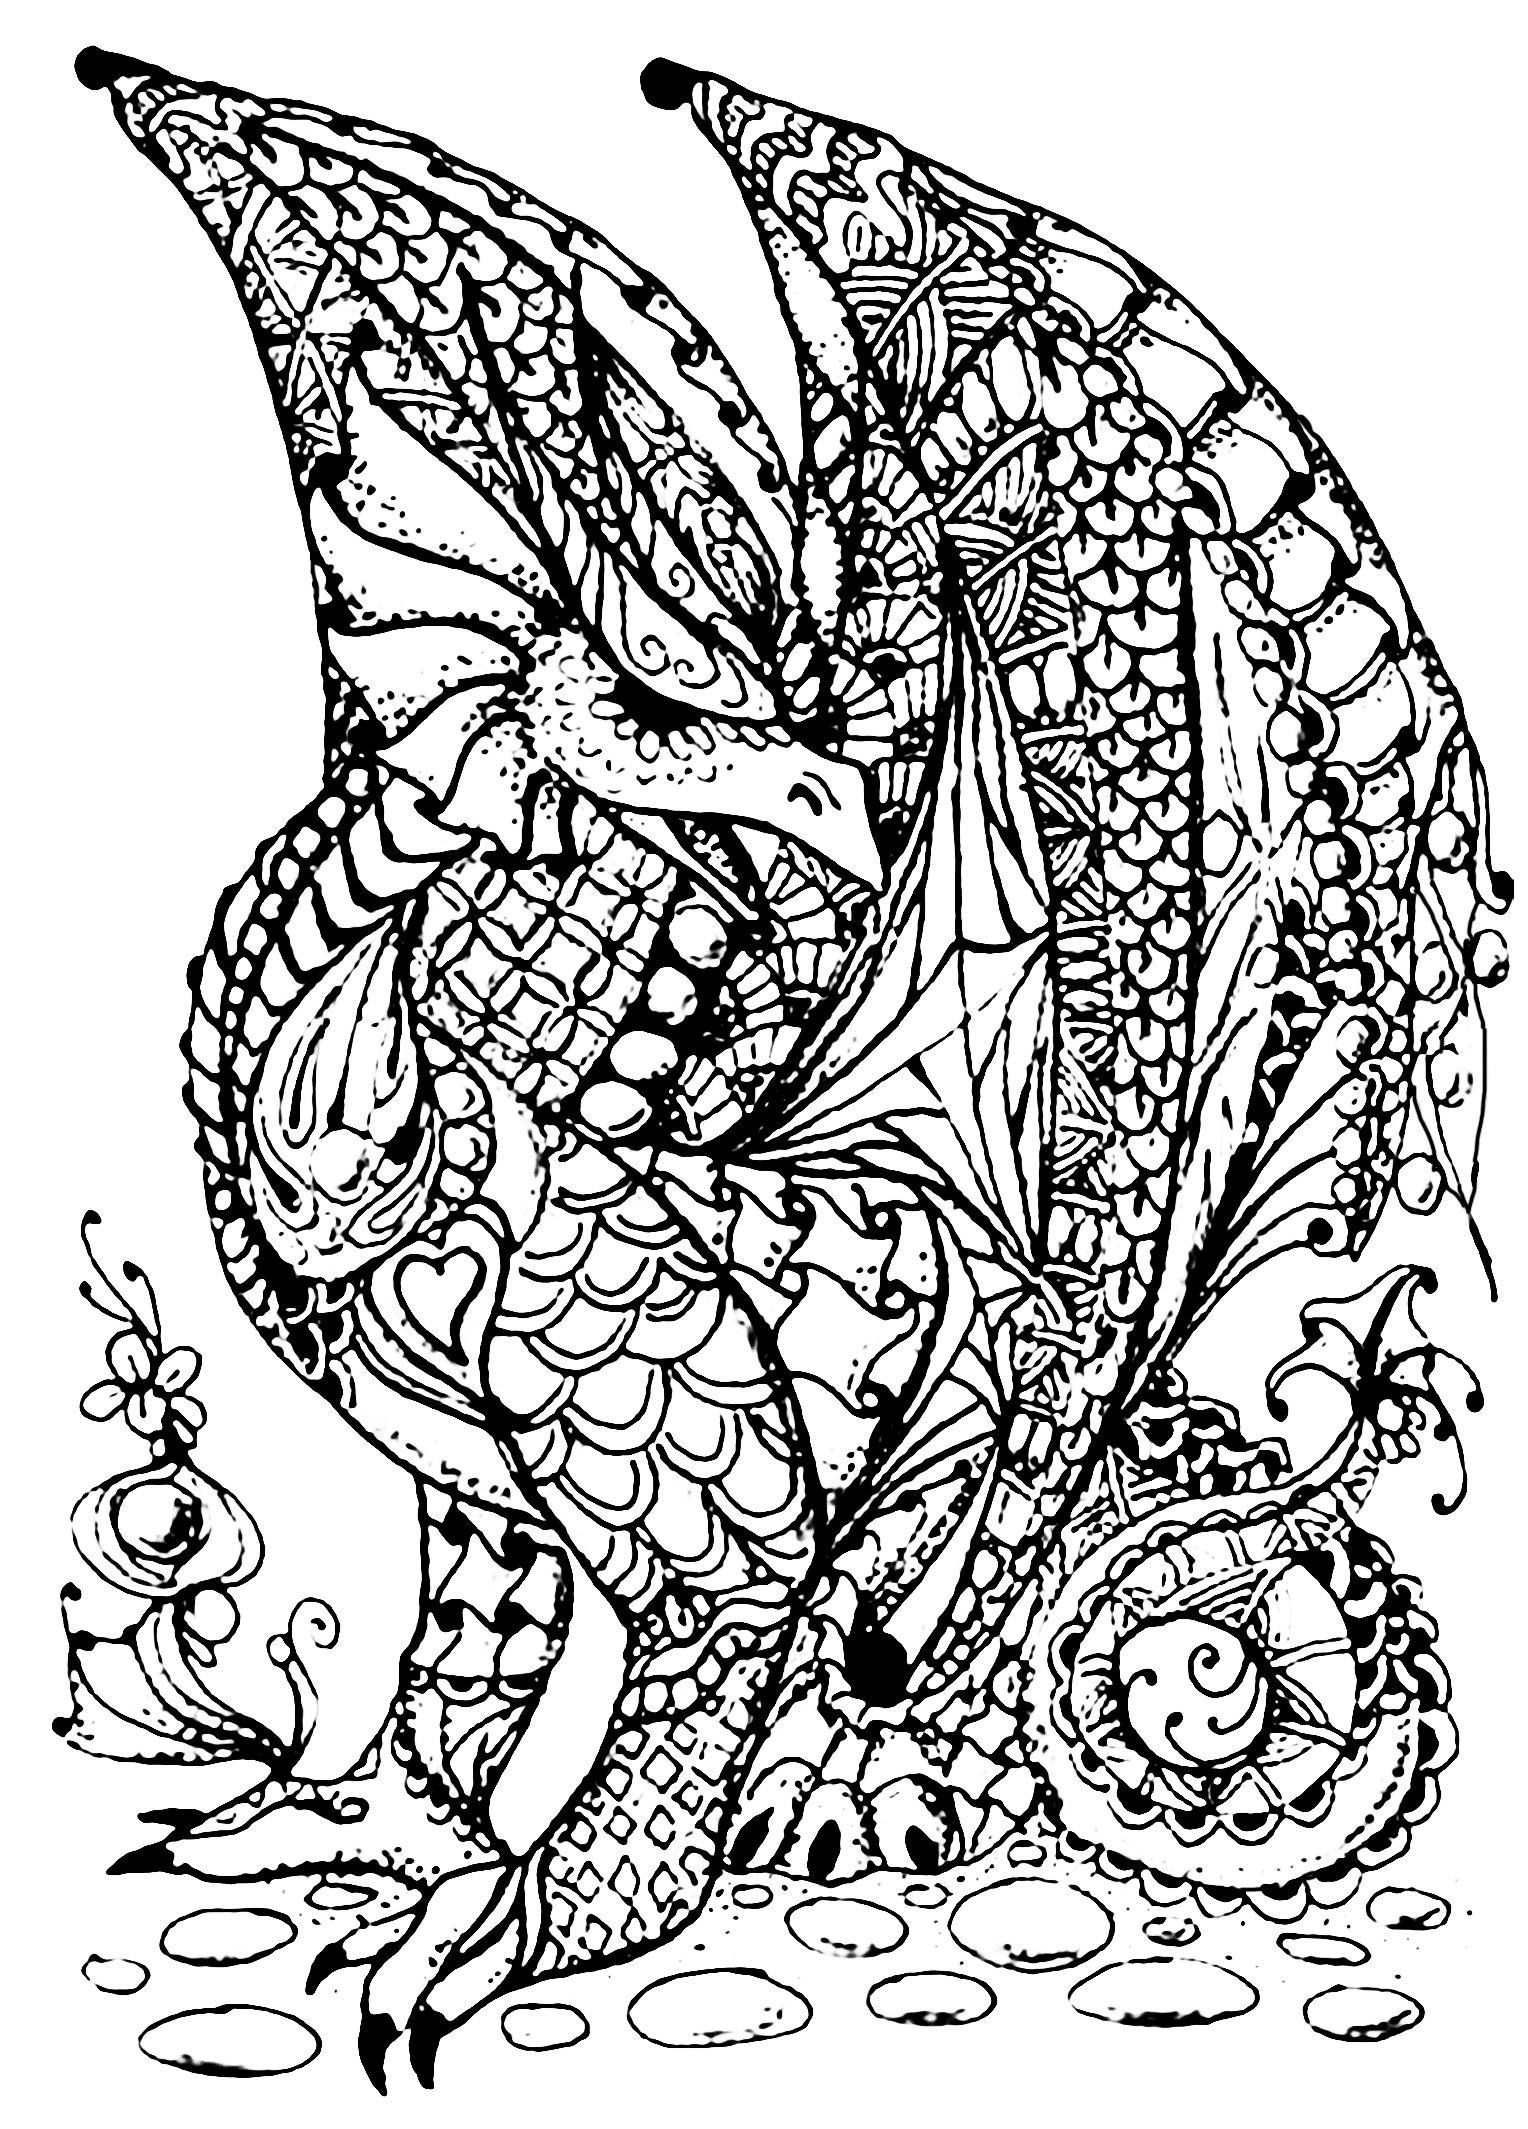 Dragon full of scales Dragons Adult Coloring Pages